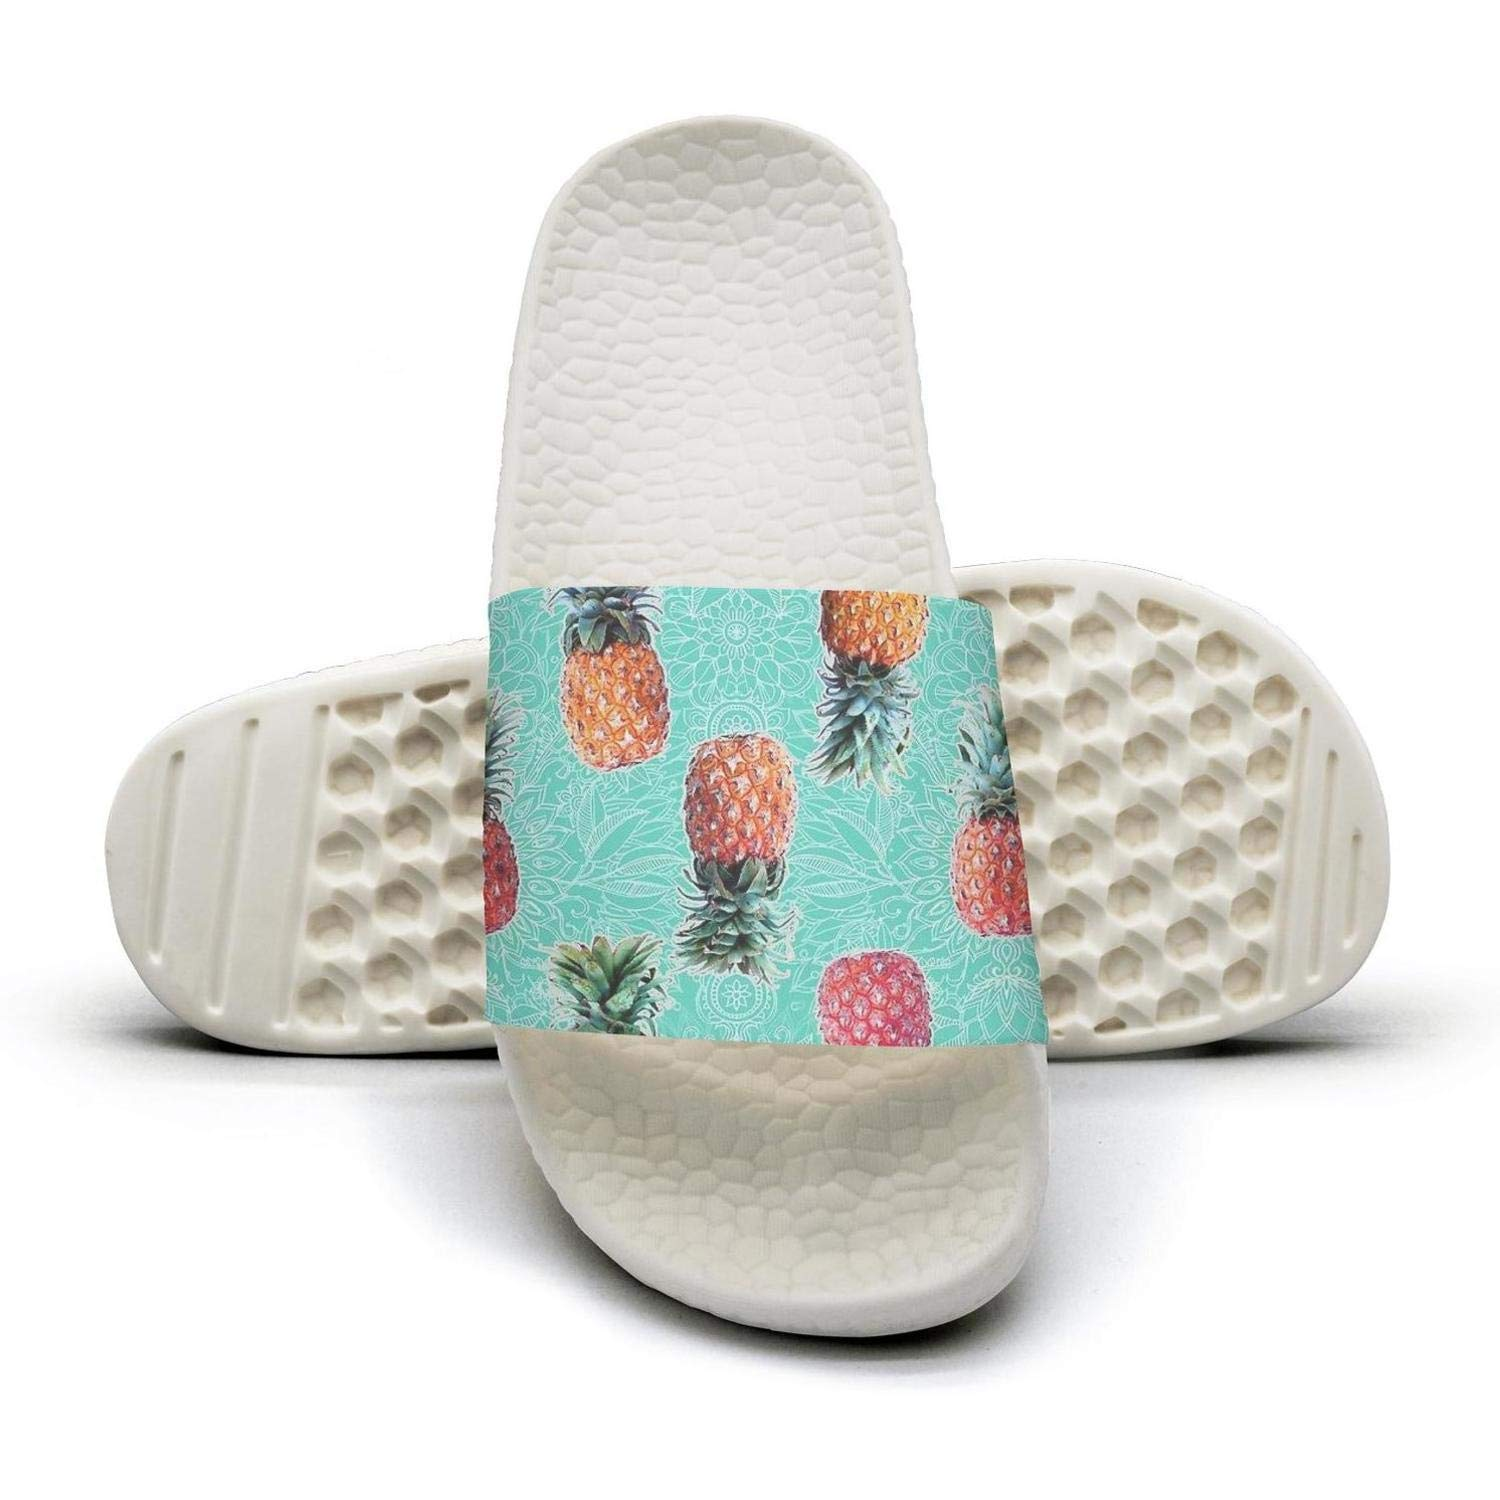 WooWe Mens Fashion Slippers Sandals Casual Pineapple Cat Avocado Watermelon